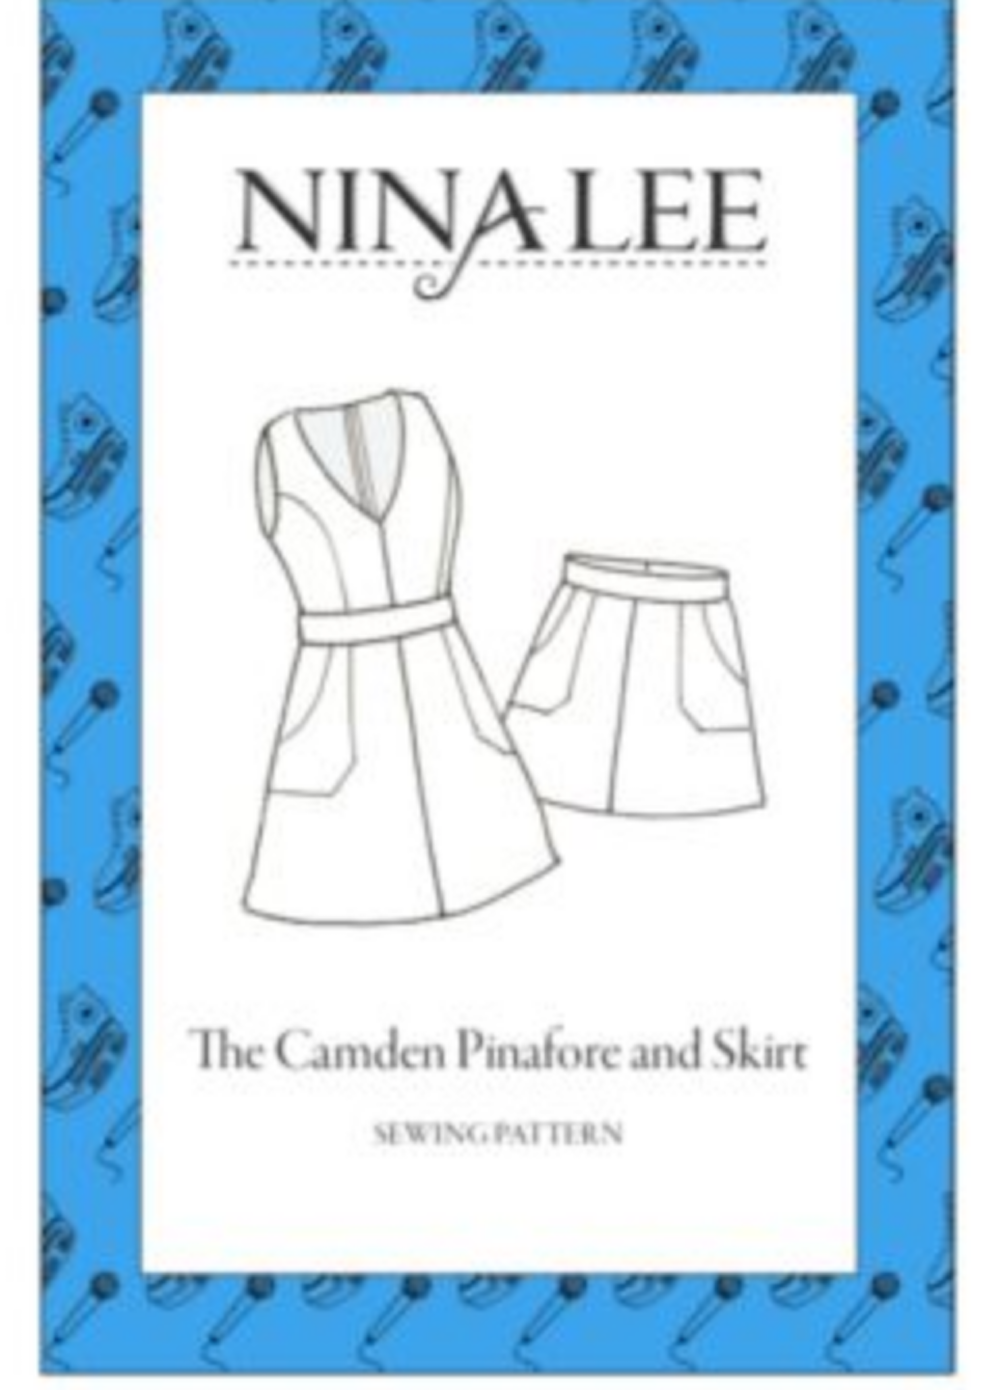 Camden Pinafore & Skirt - Nina Lee